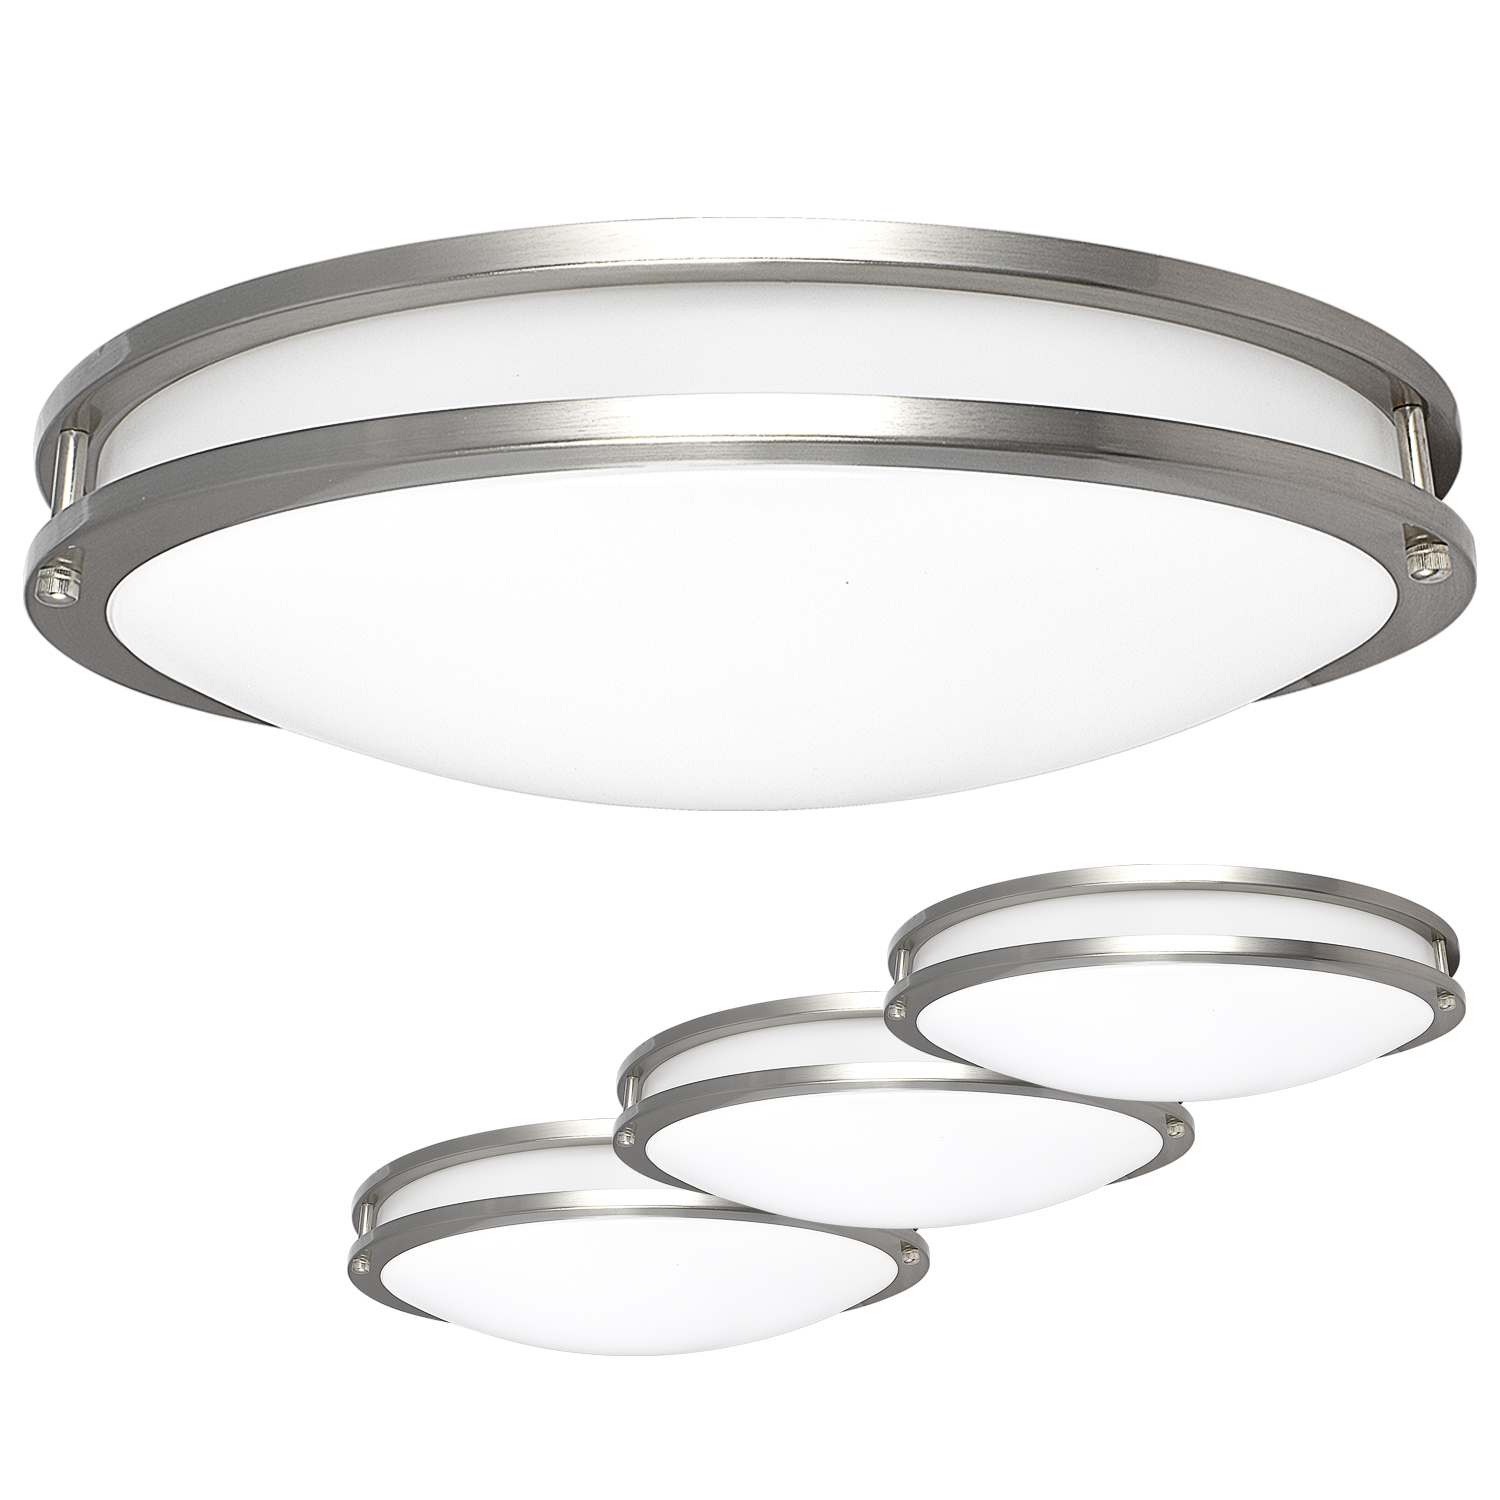 Luxrite LED Flush Mount Ceiling Light, 18 Inch, Dimmable